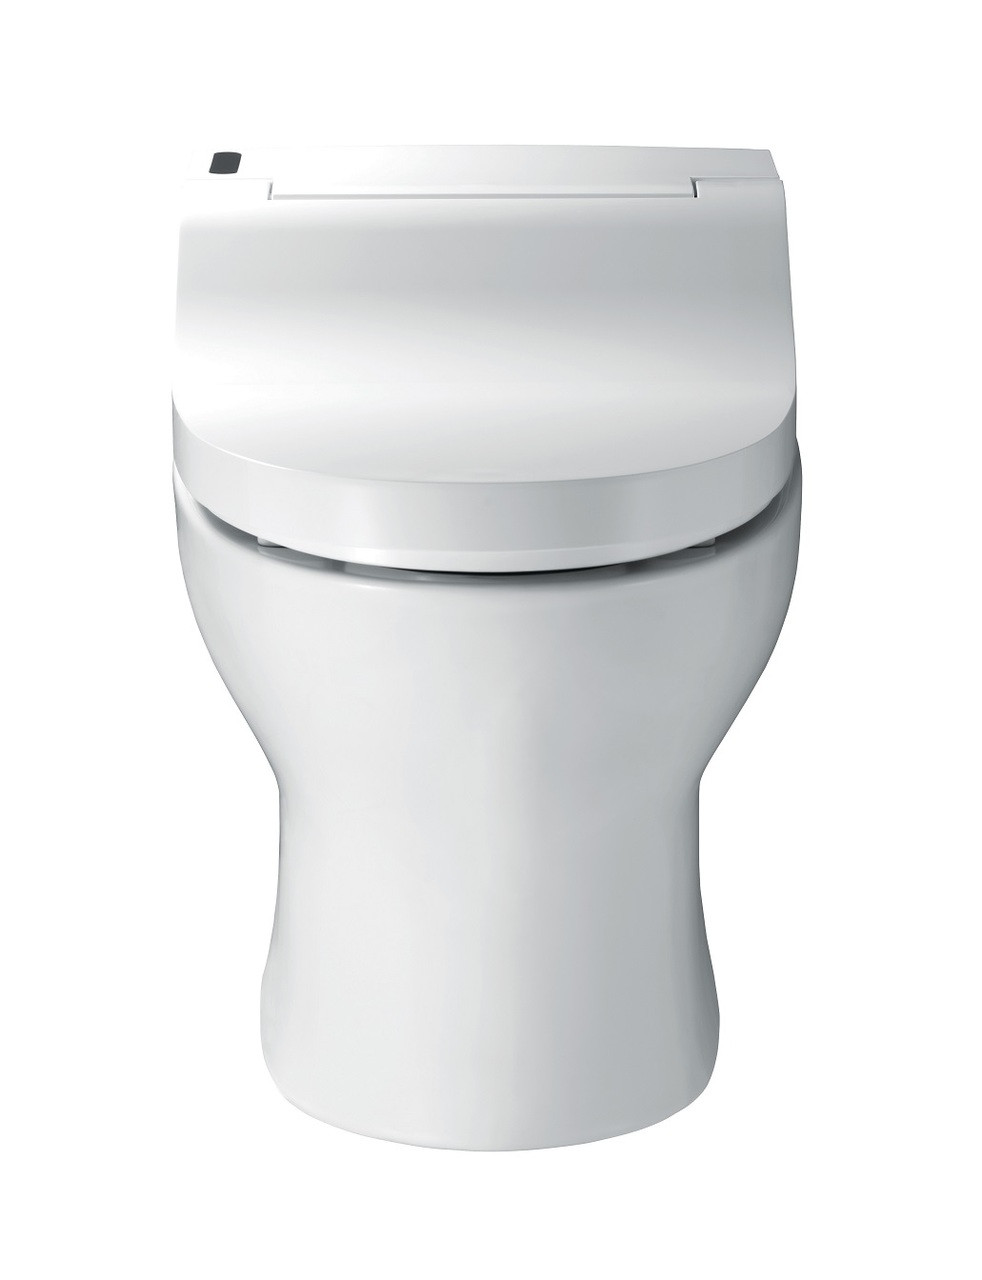 Bio Bidet Installation Instructions.Bio Bidet Ib 835 Integrated Toilet System